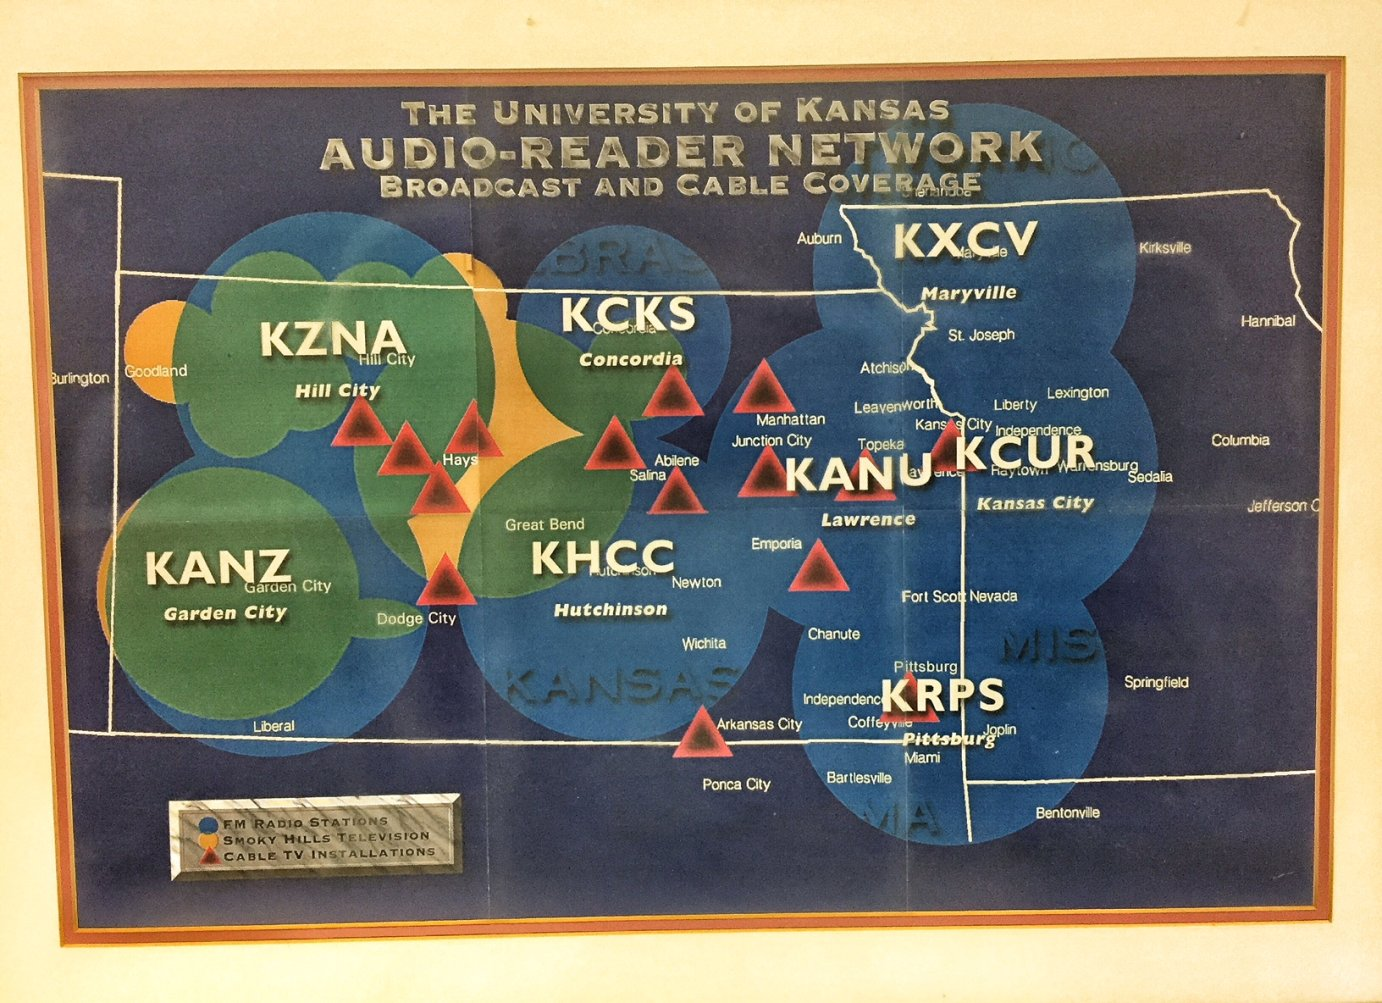 This map indicates the vast reach of the Kansas Audio Reader Network. (Photo by J. Schafer)